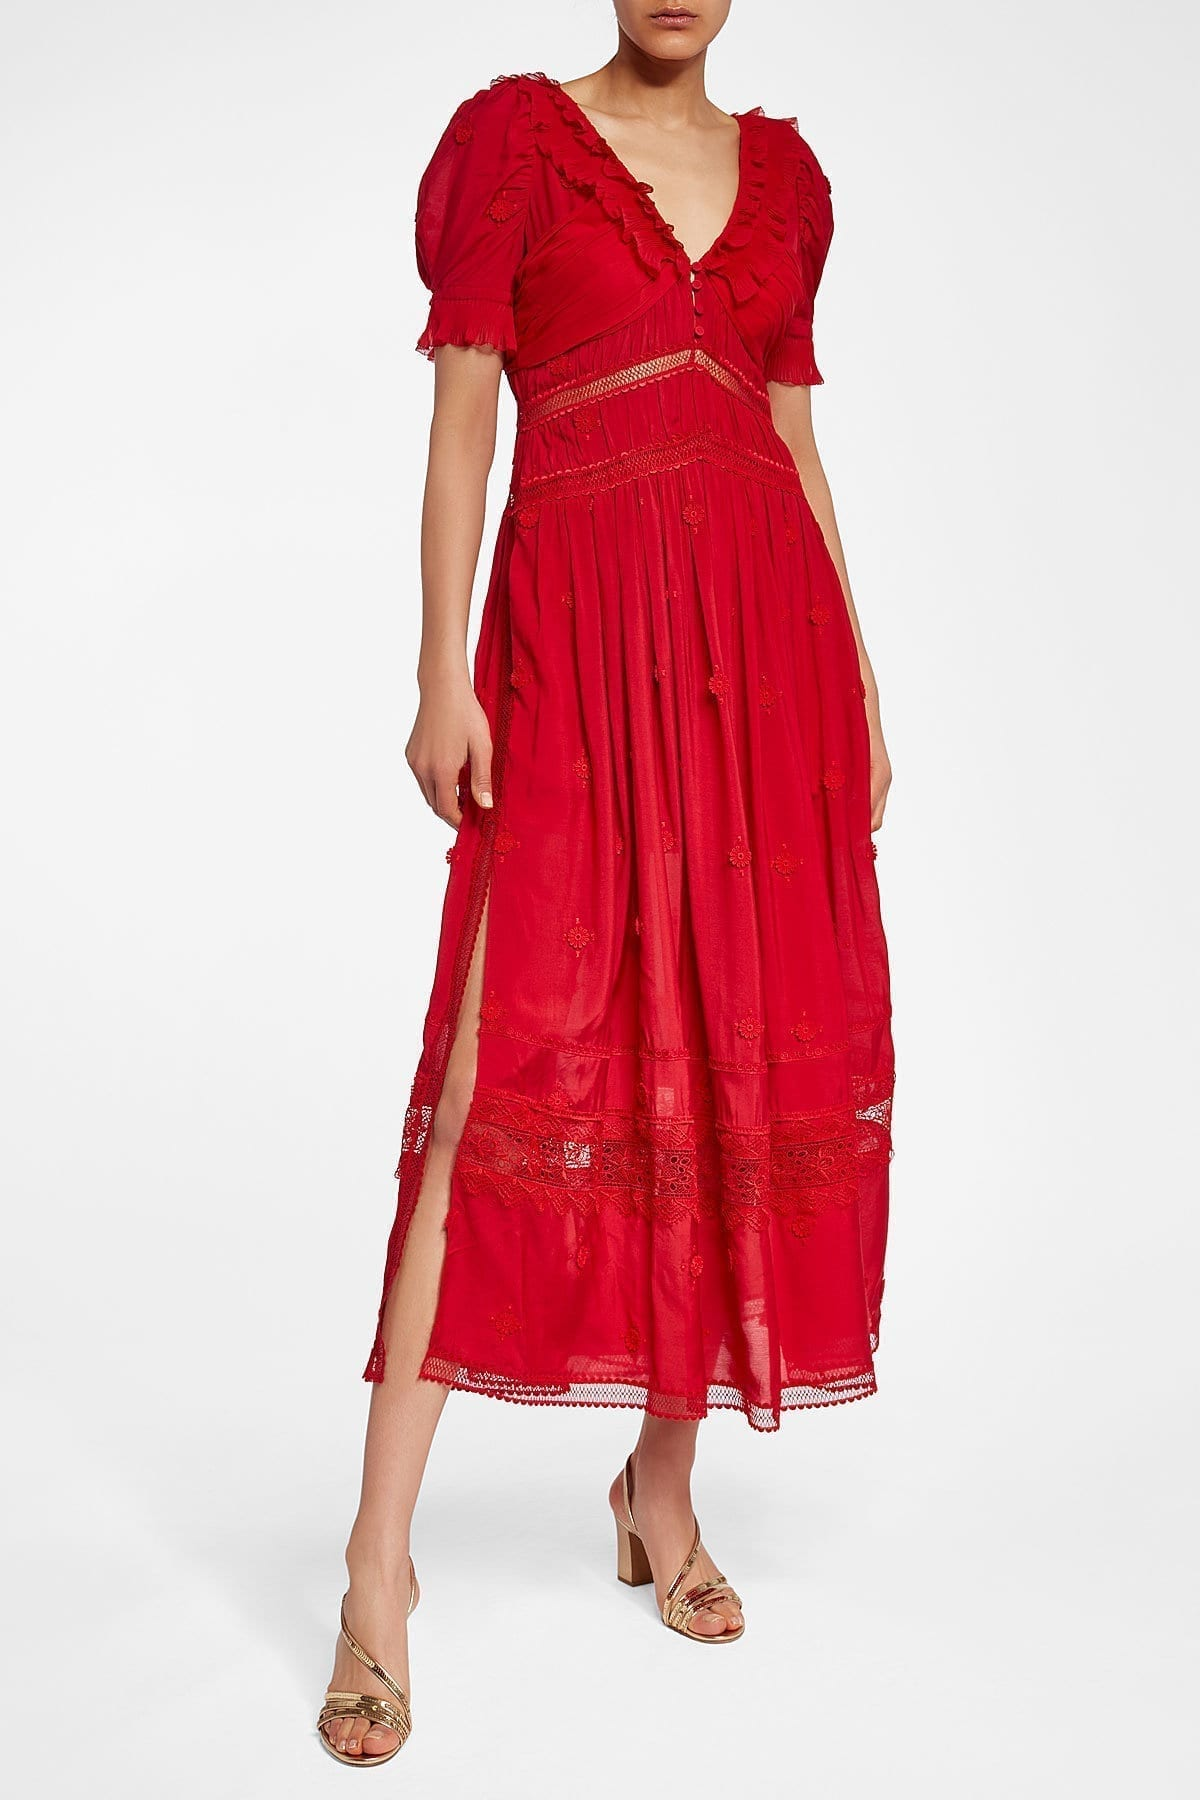 SELF-PORTRAIT 3D Plumetis Lace Midi Red Dress